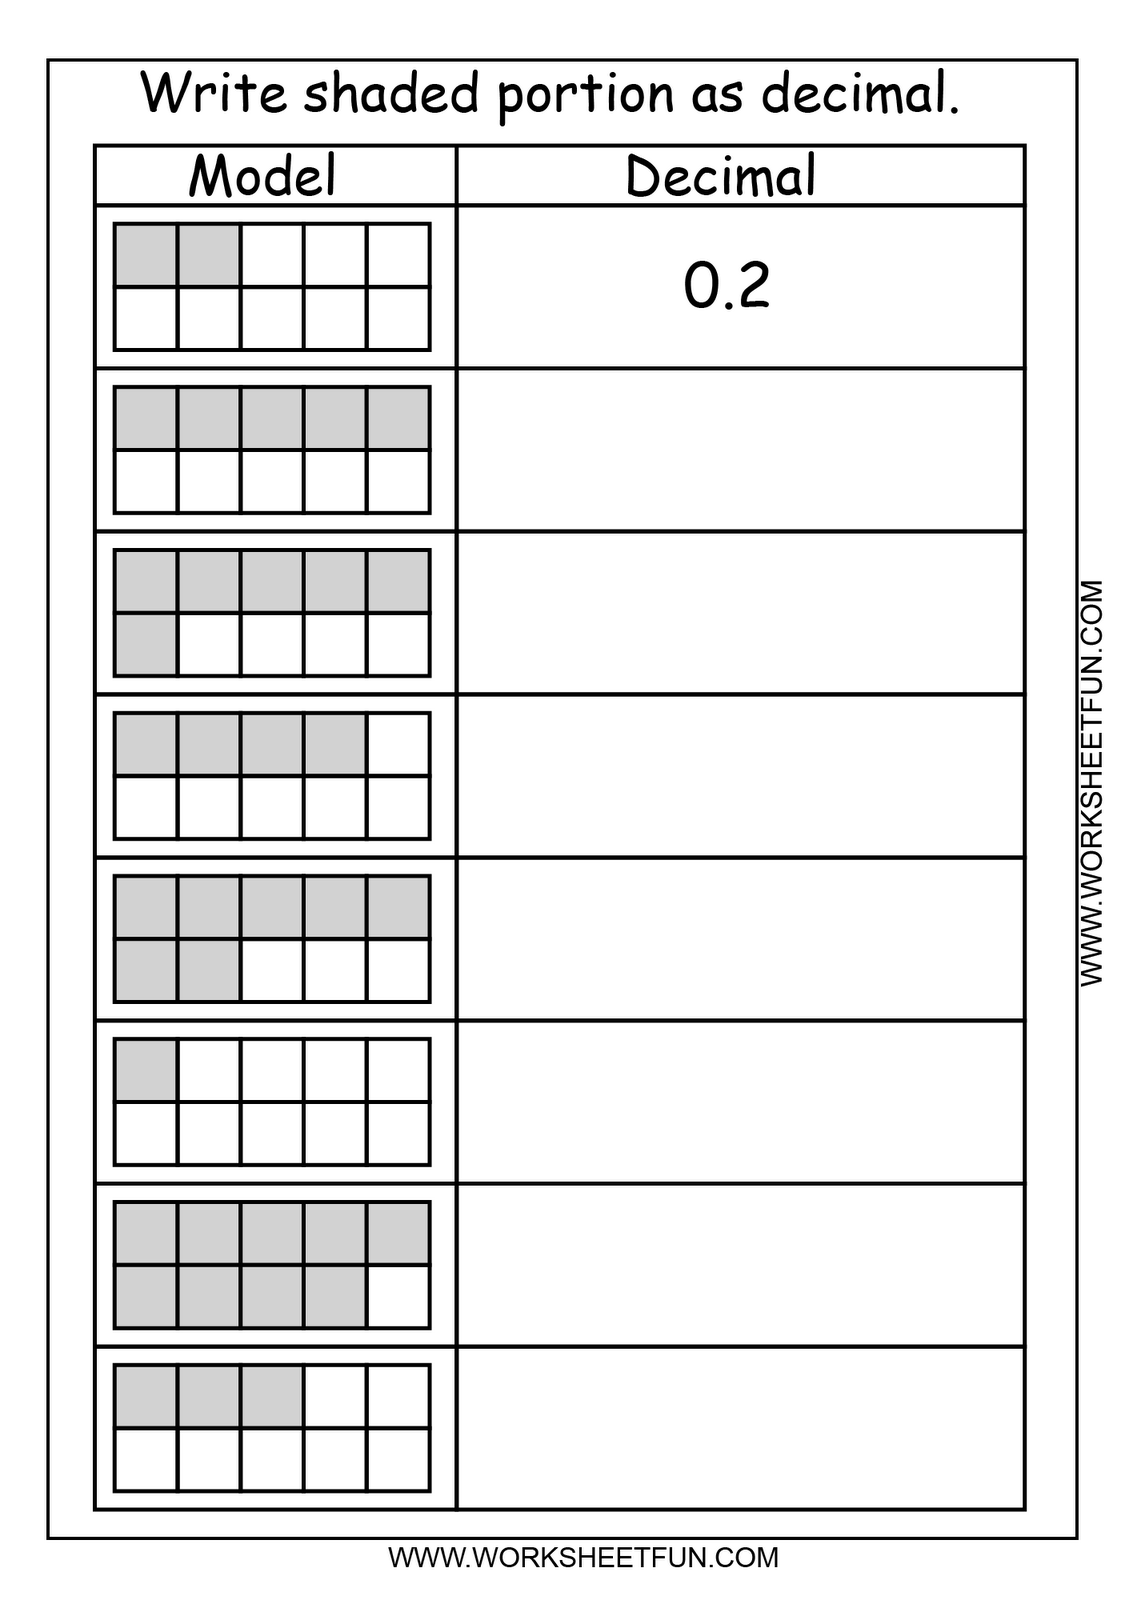 medium resolution of Worksheetfun - FREE PRINTABLE WORKSHEETS   Fractions